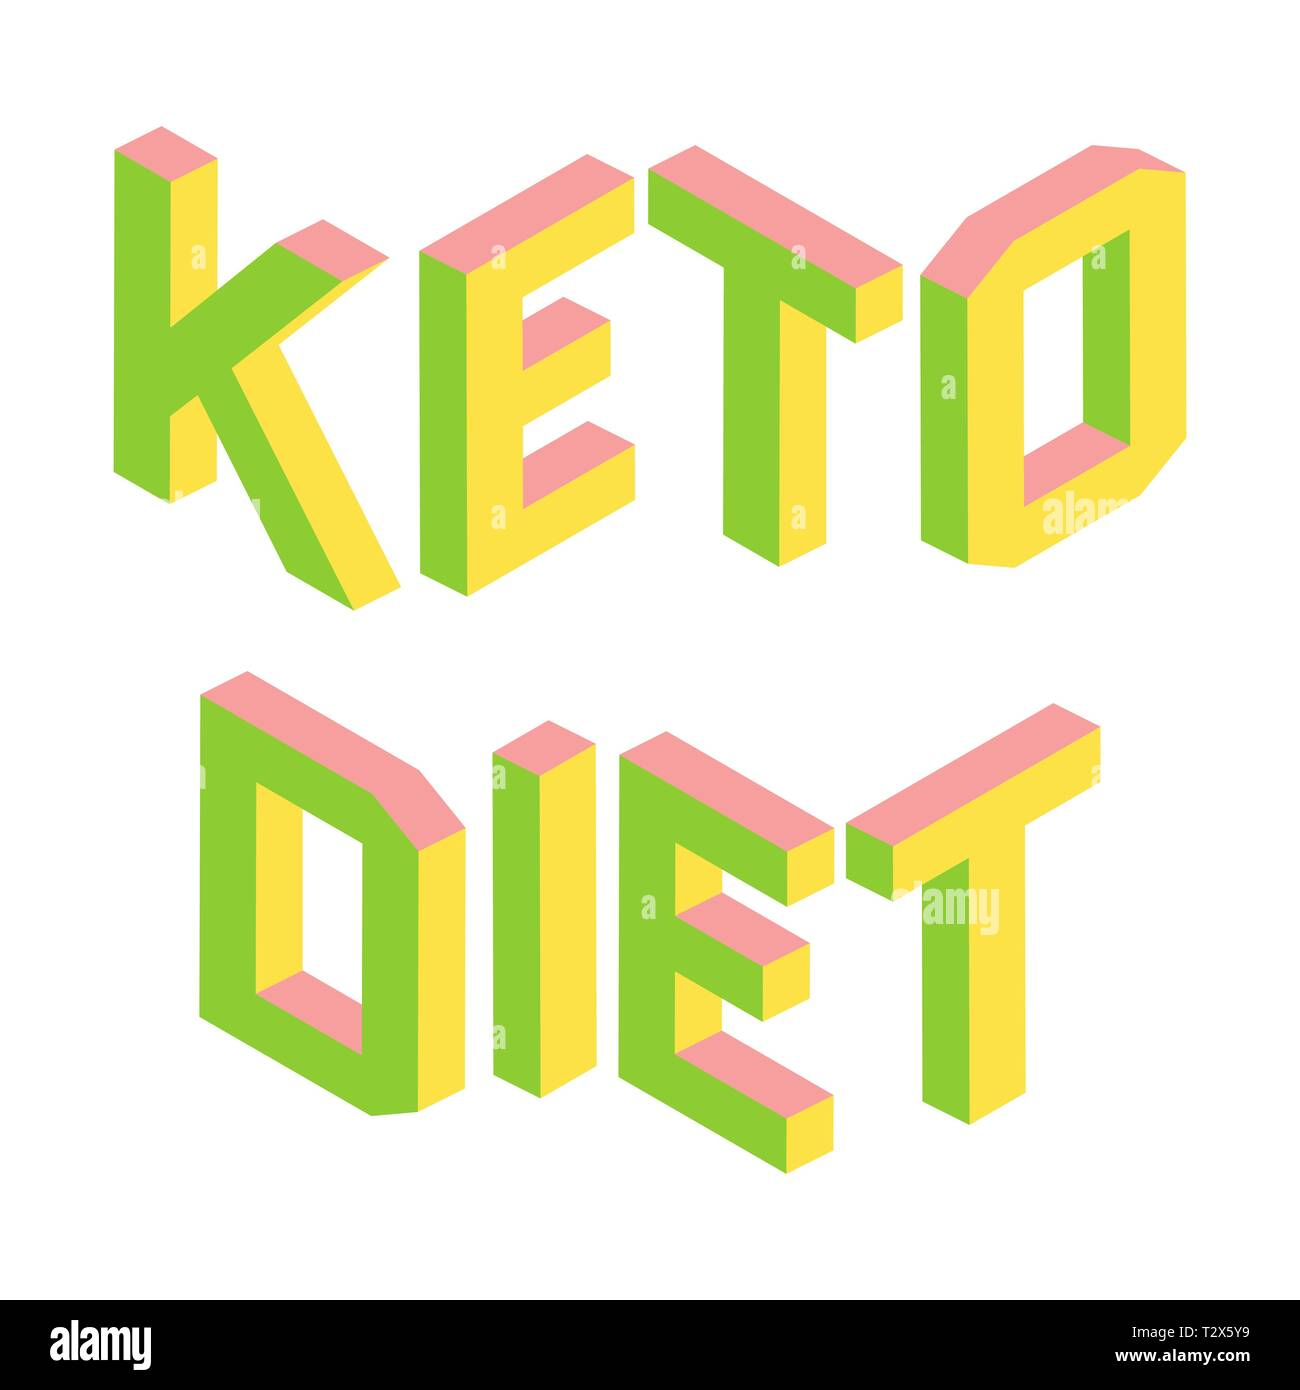 2f007af8ca40c Ketogenic, Keto diet, colorful 3d letters isolated, green and pink logo,  healthy